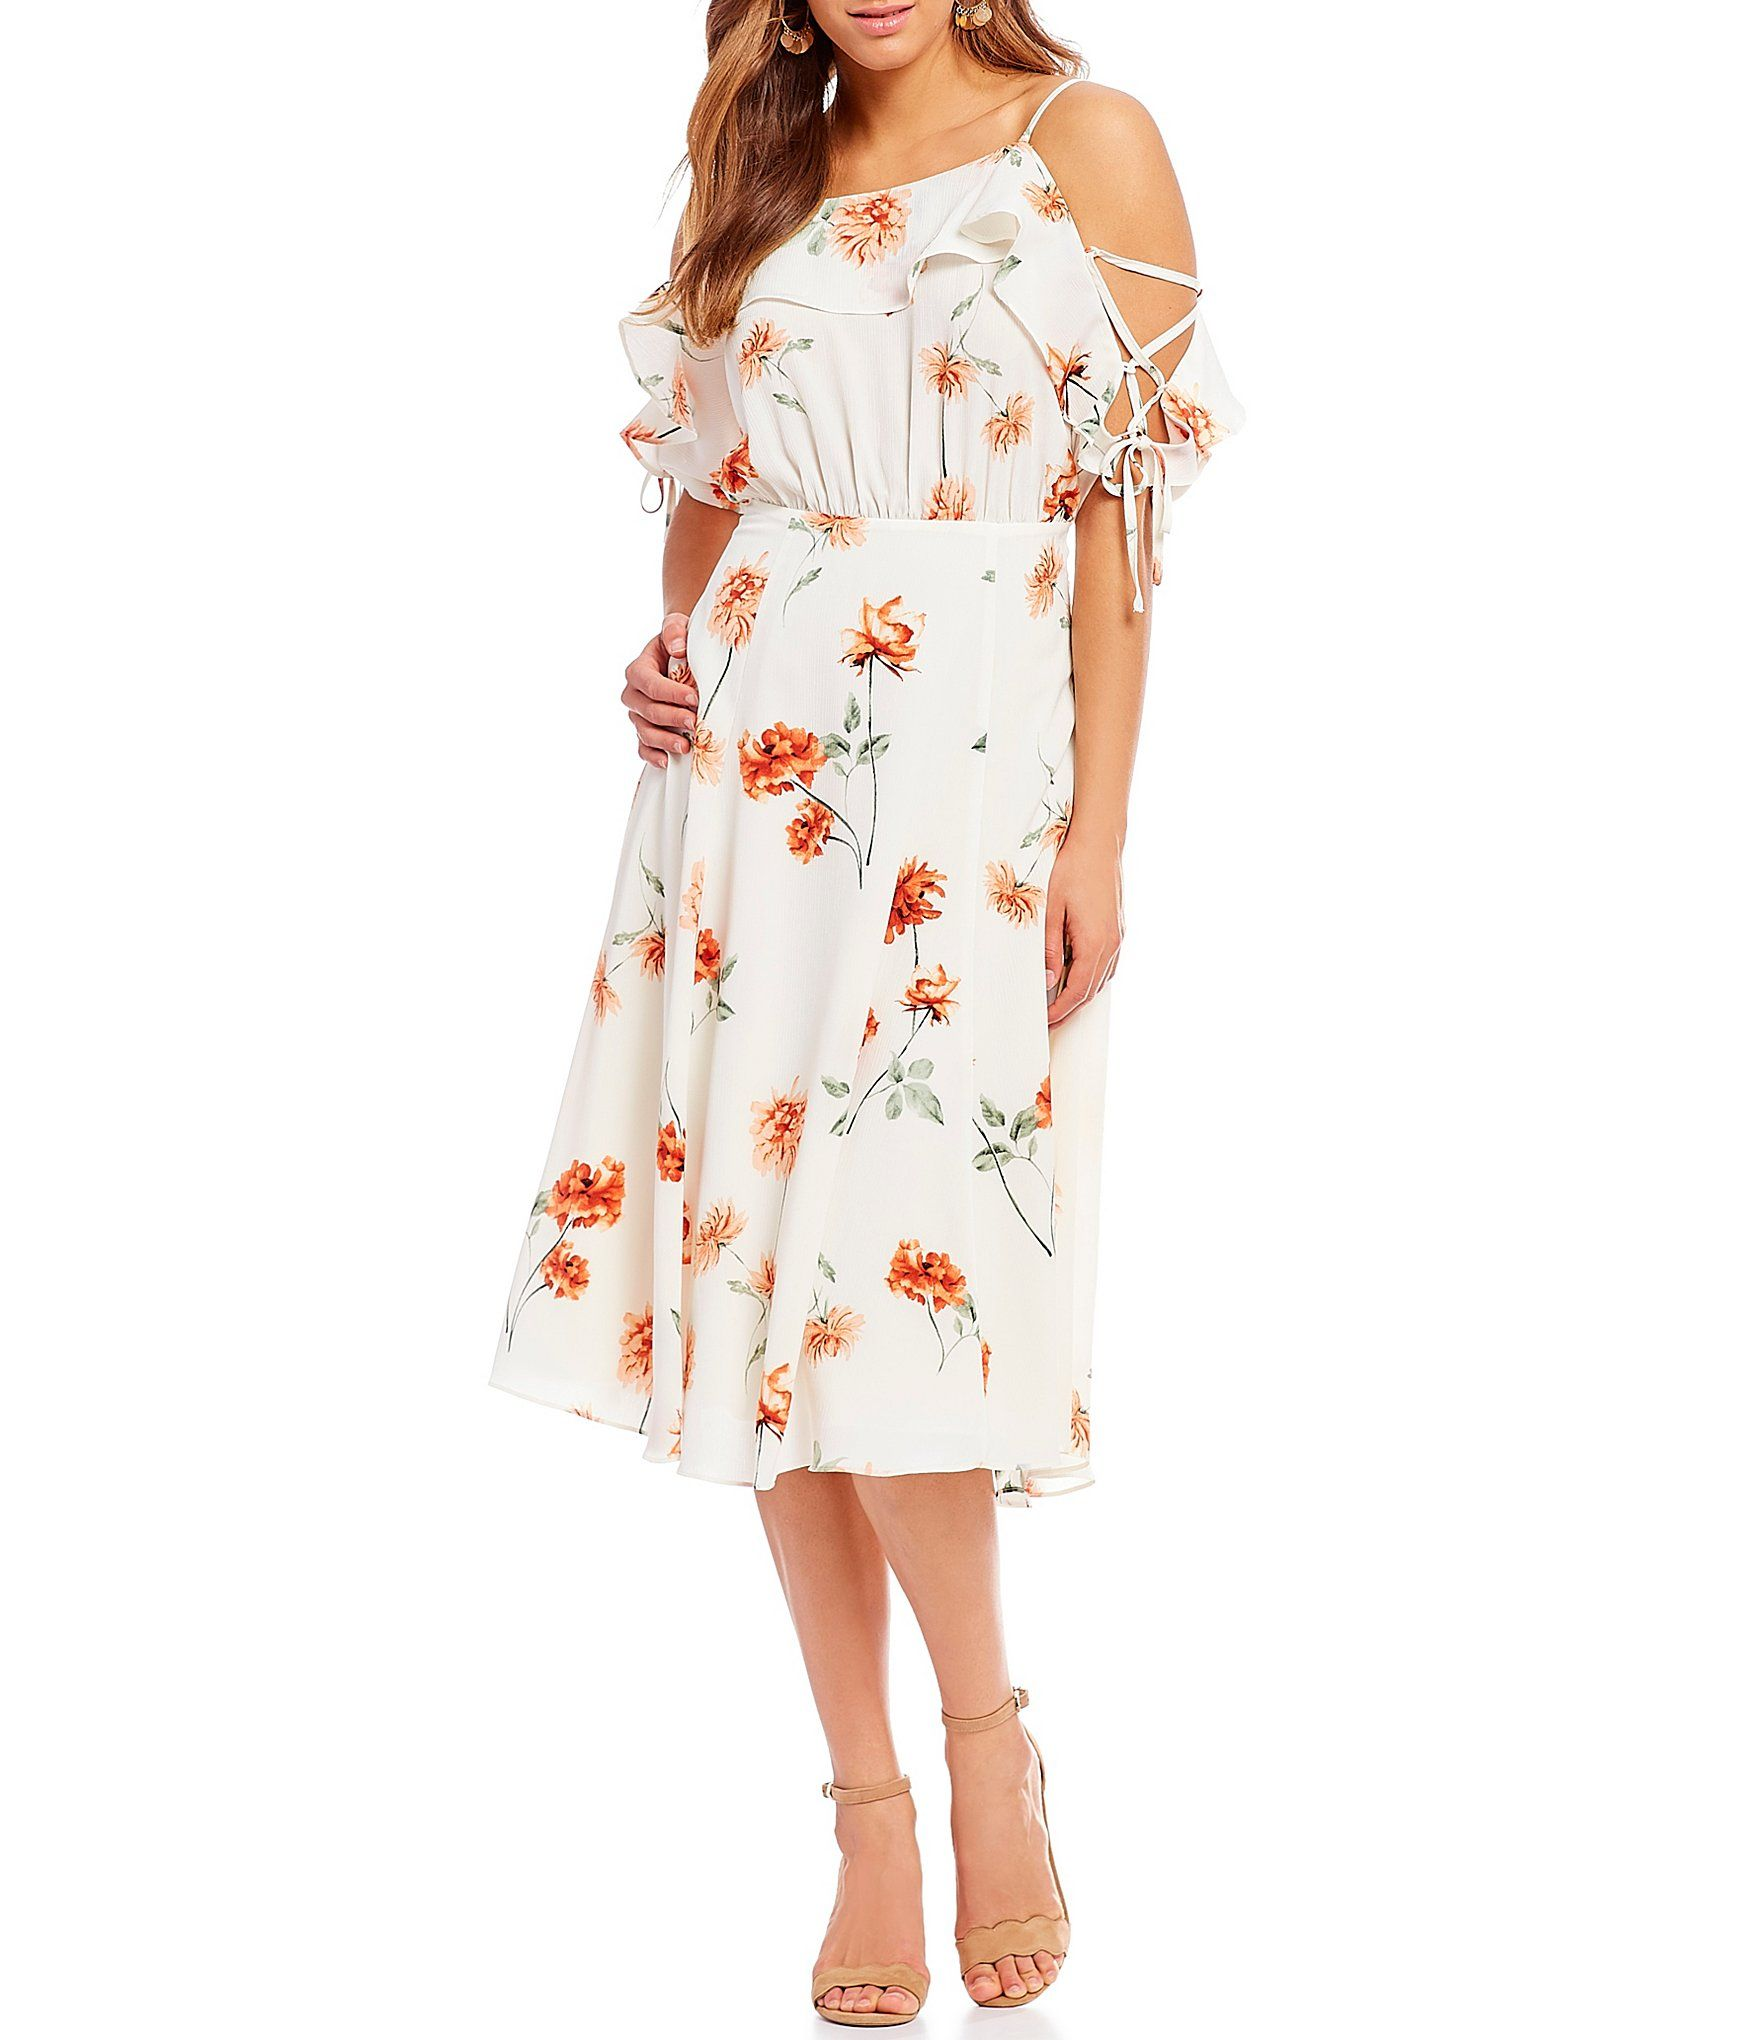 fb4b11a362d First Monday Floral Print Cold Shoulder Lace-Up Tie Sleeve A-Line Midi Dress